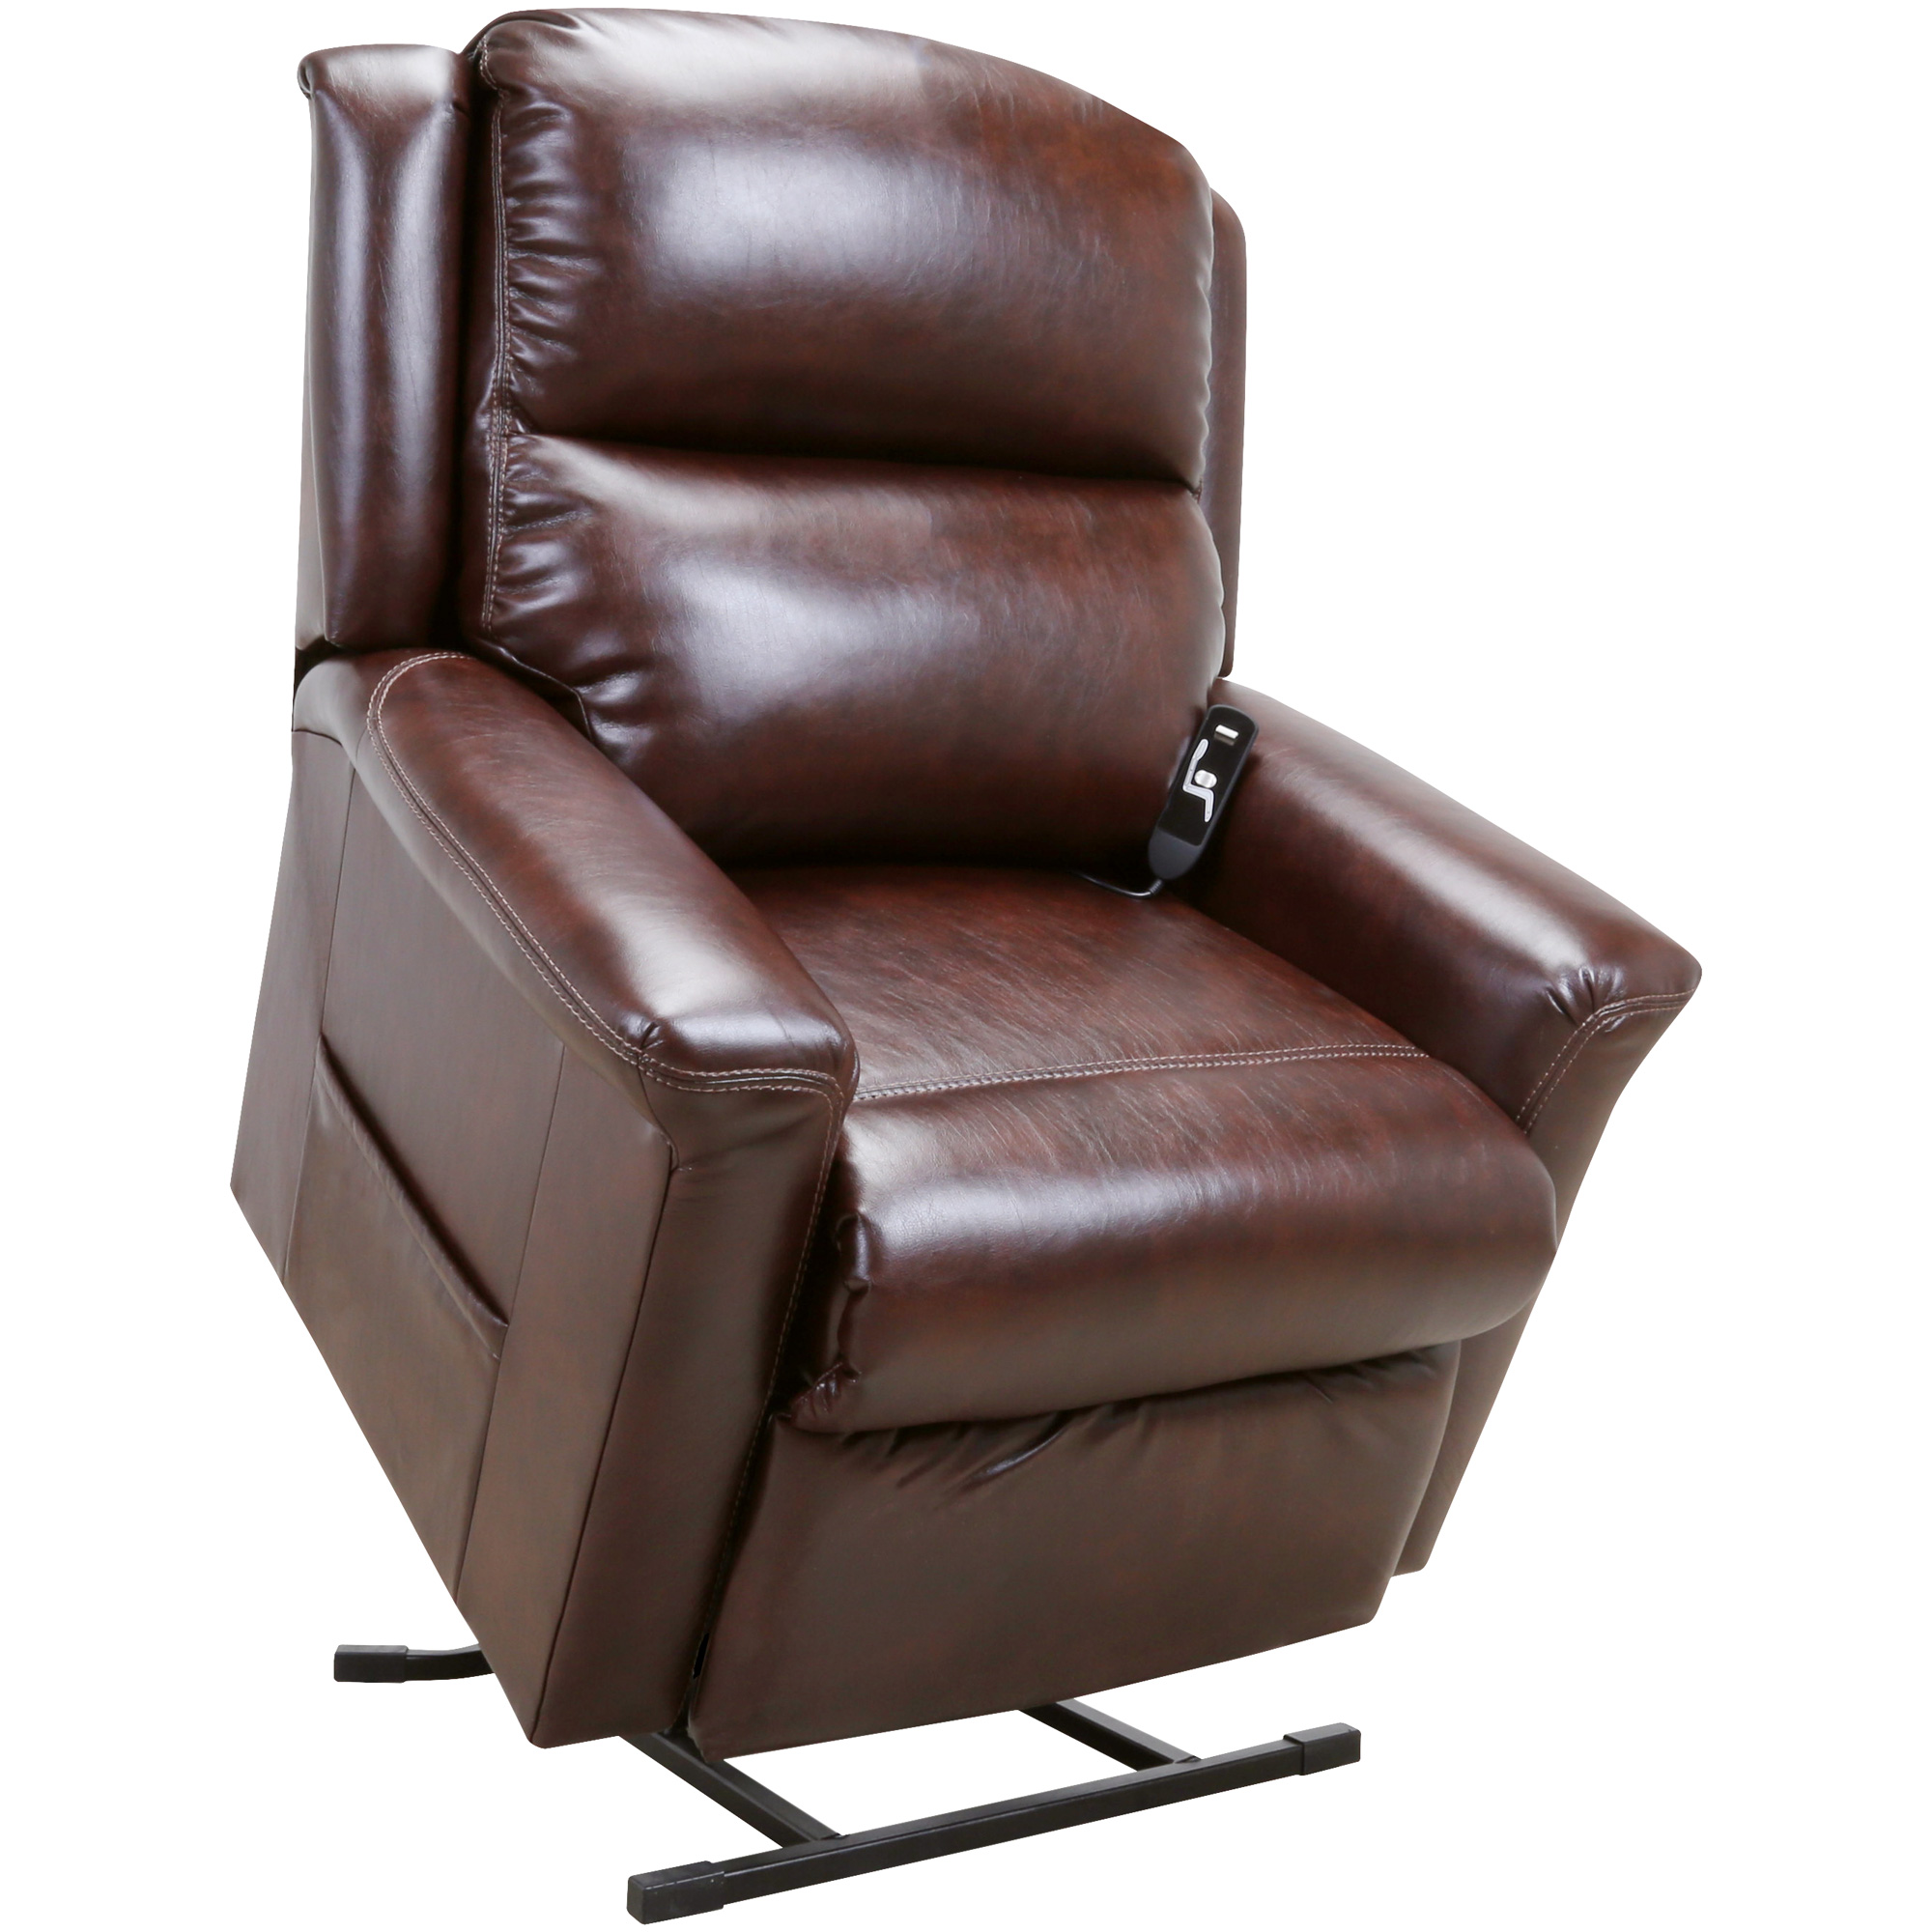 Franklin | Coral Chocolate Lift Chair Recliner